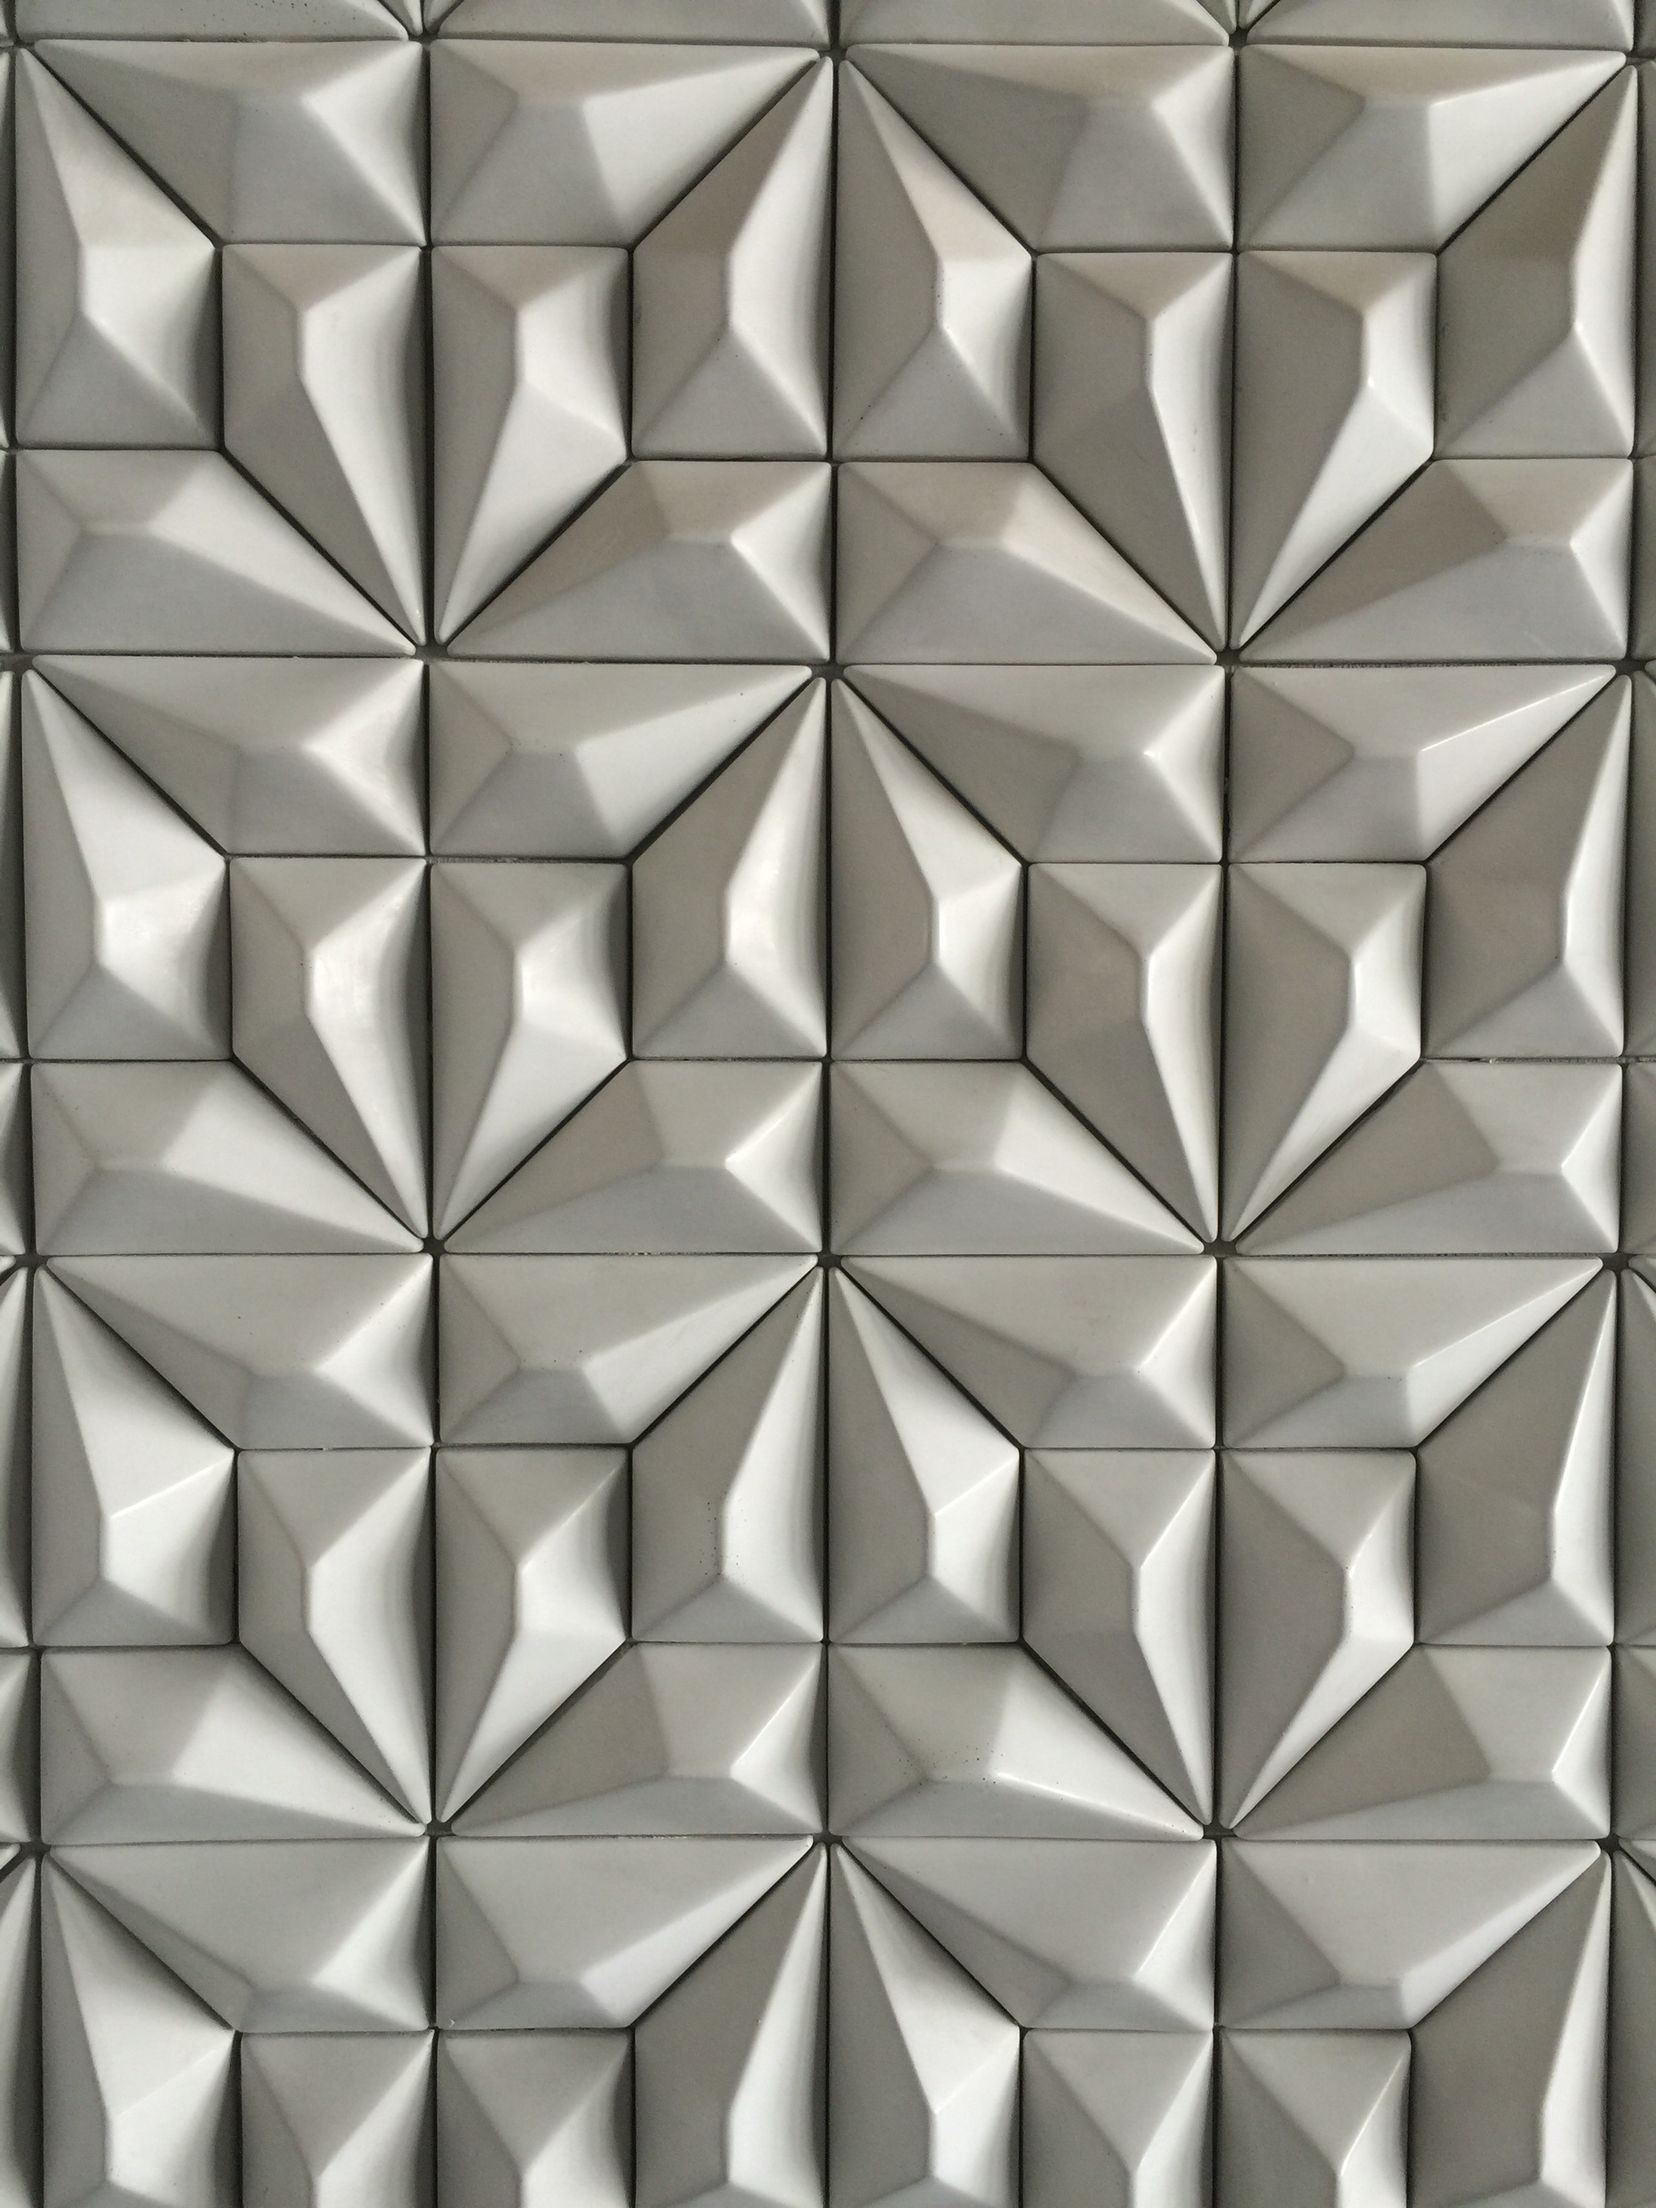 Geometrical Pattern 3d Wall Panels Origami Wall Art Wall Patterns